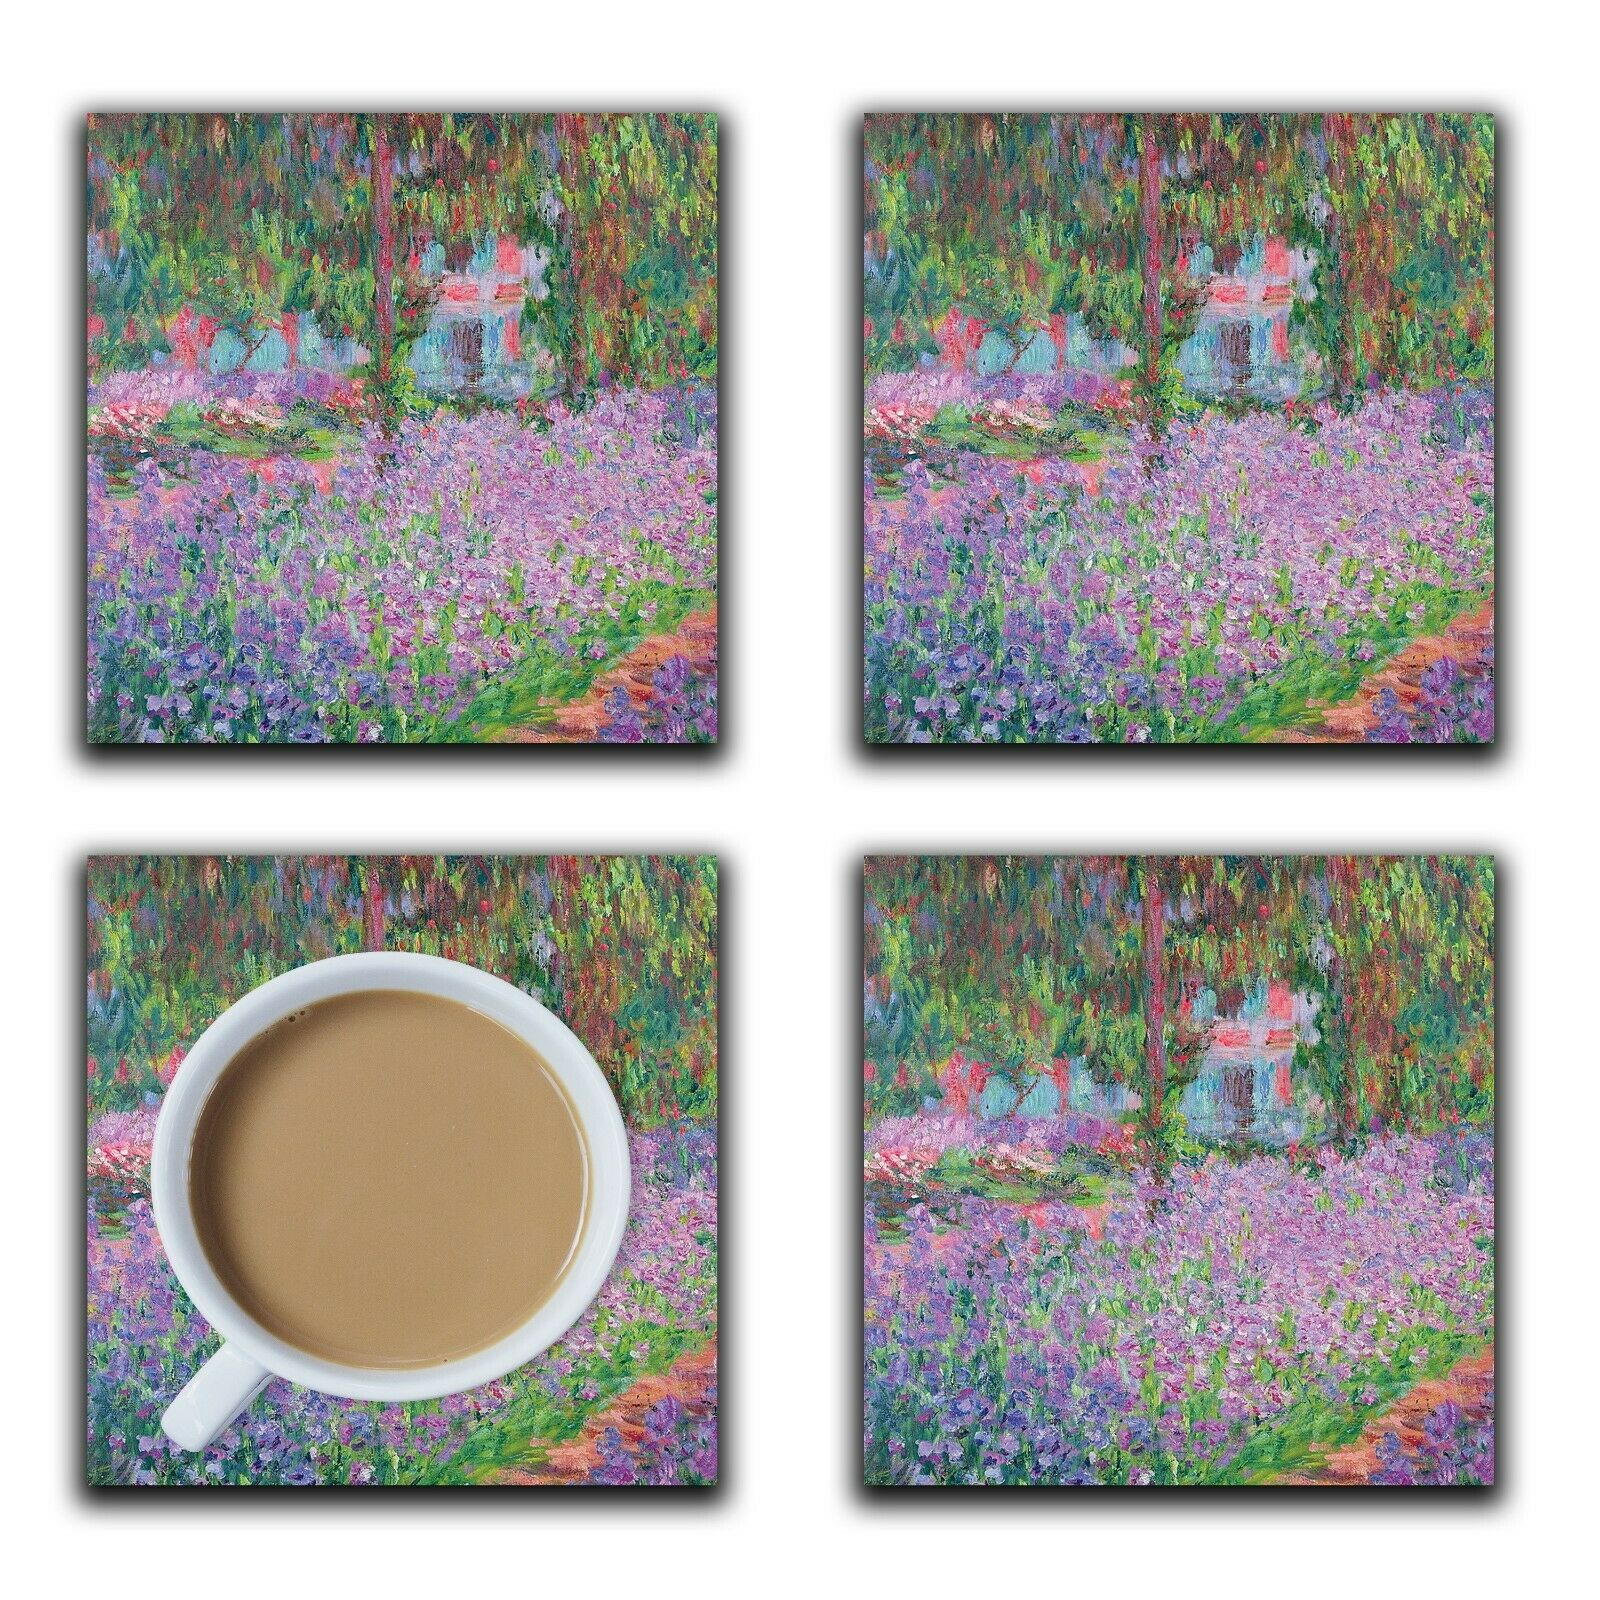 Embossi Printed Monet Garden, wood or ceramic tile, set of 4 Coasters